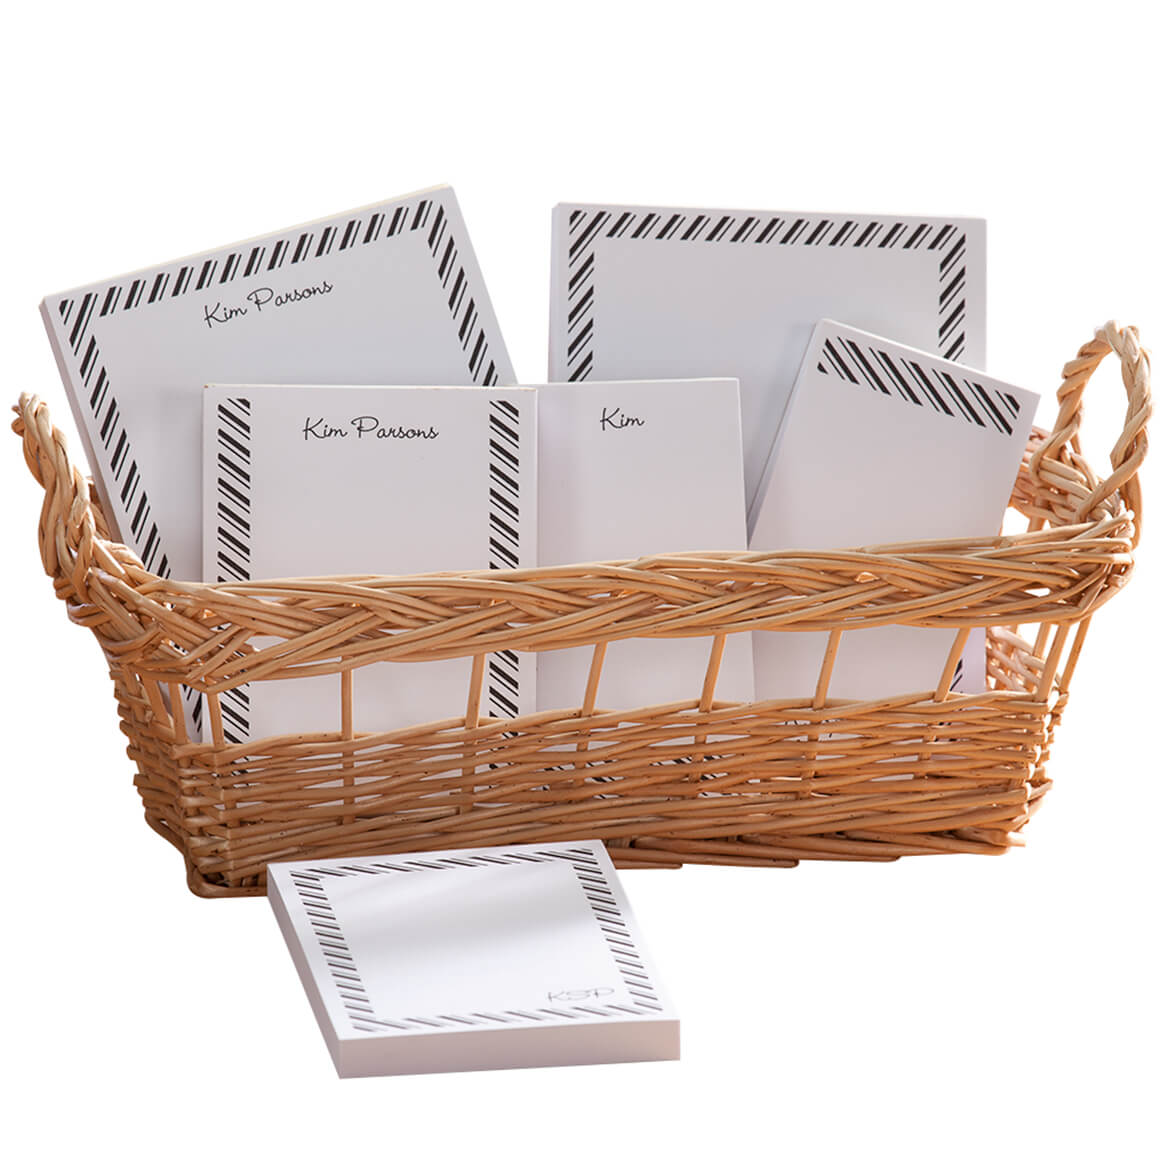 Personalized Diagonal Stripes Basketful of Notepads-349459